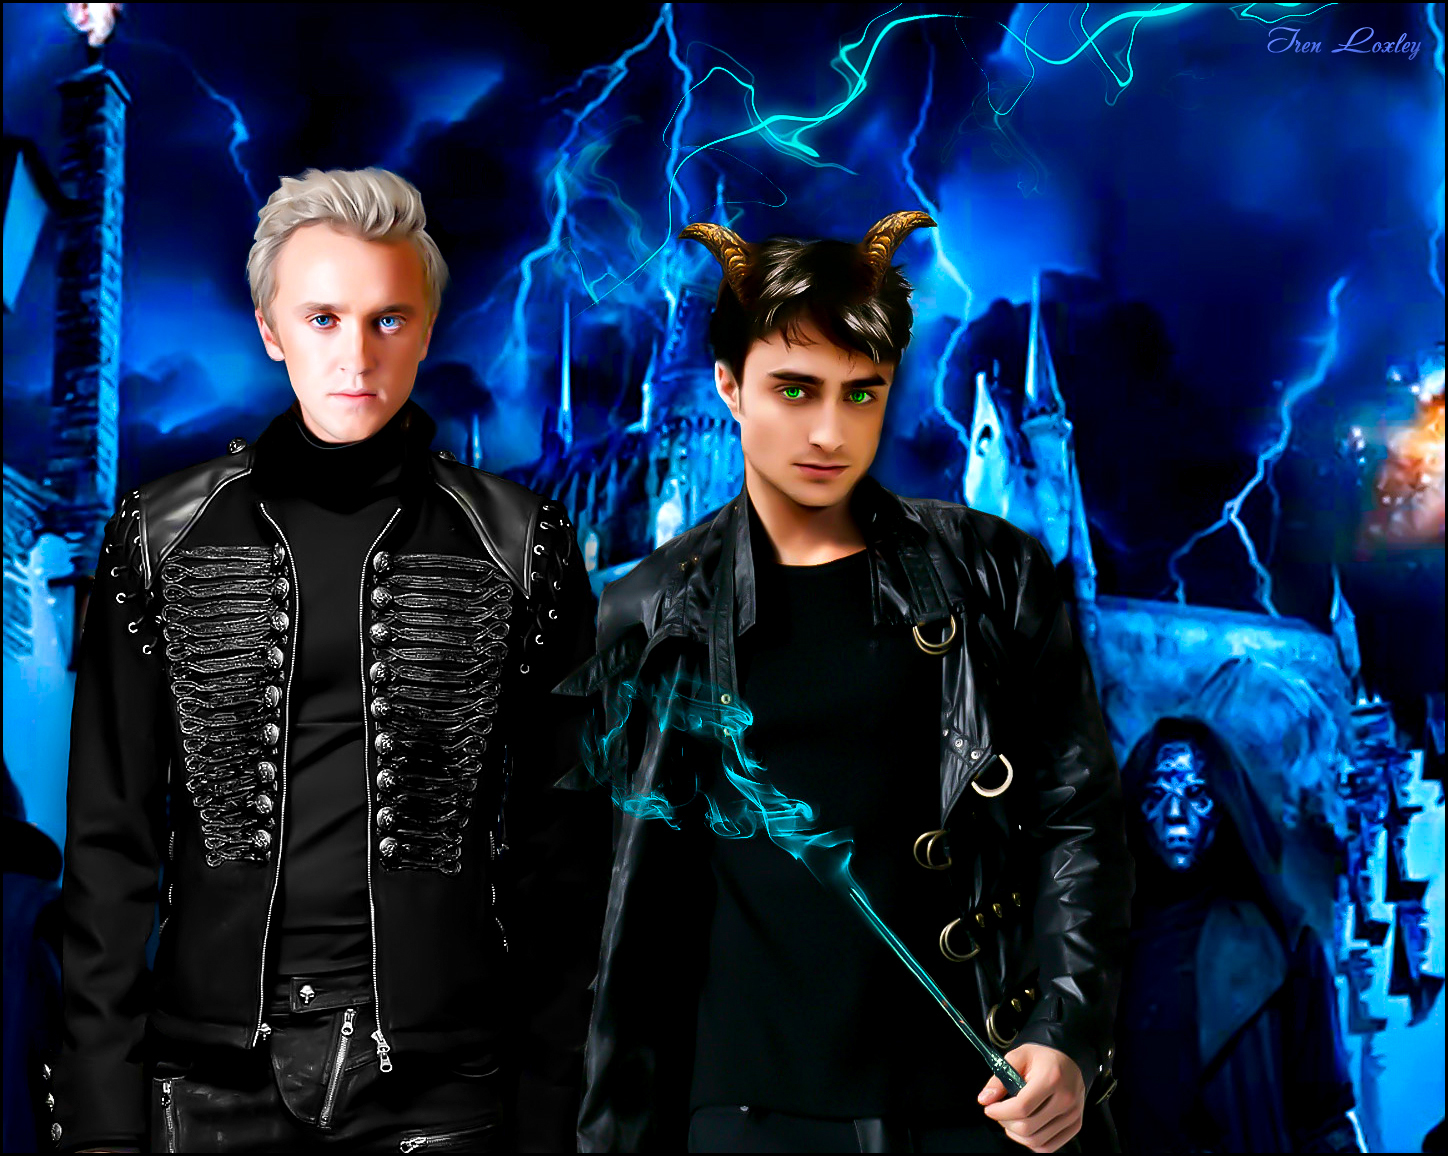 Dark Harry Draco Malfoy Death Eaters2 By Iren---Loxley On